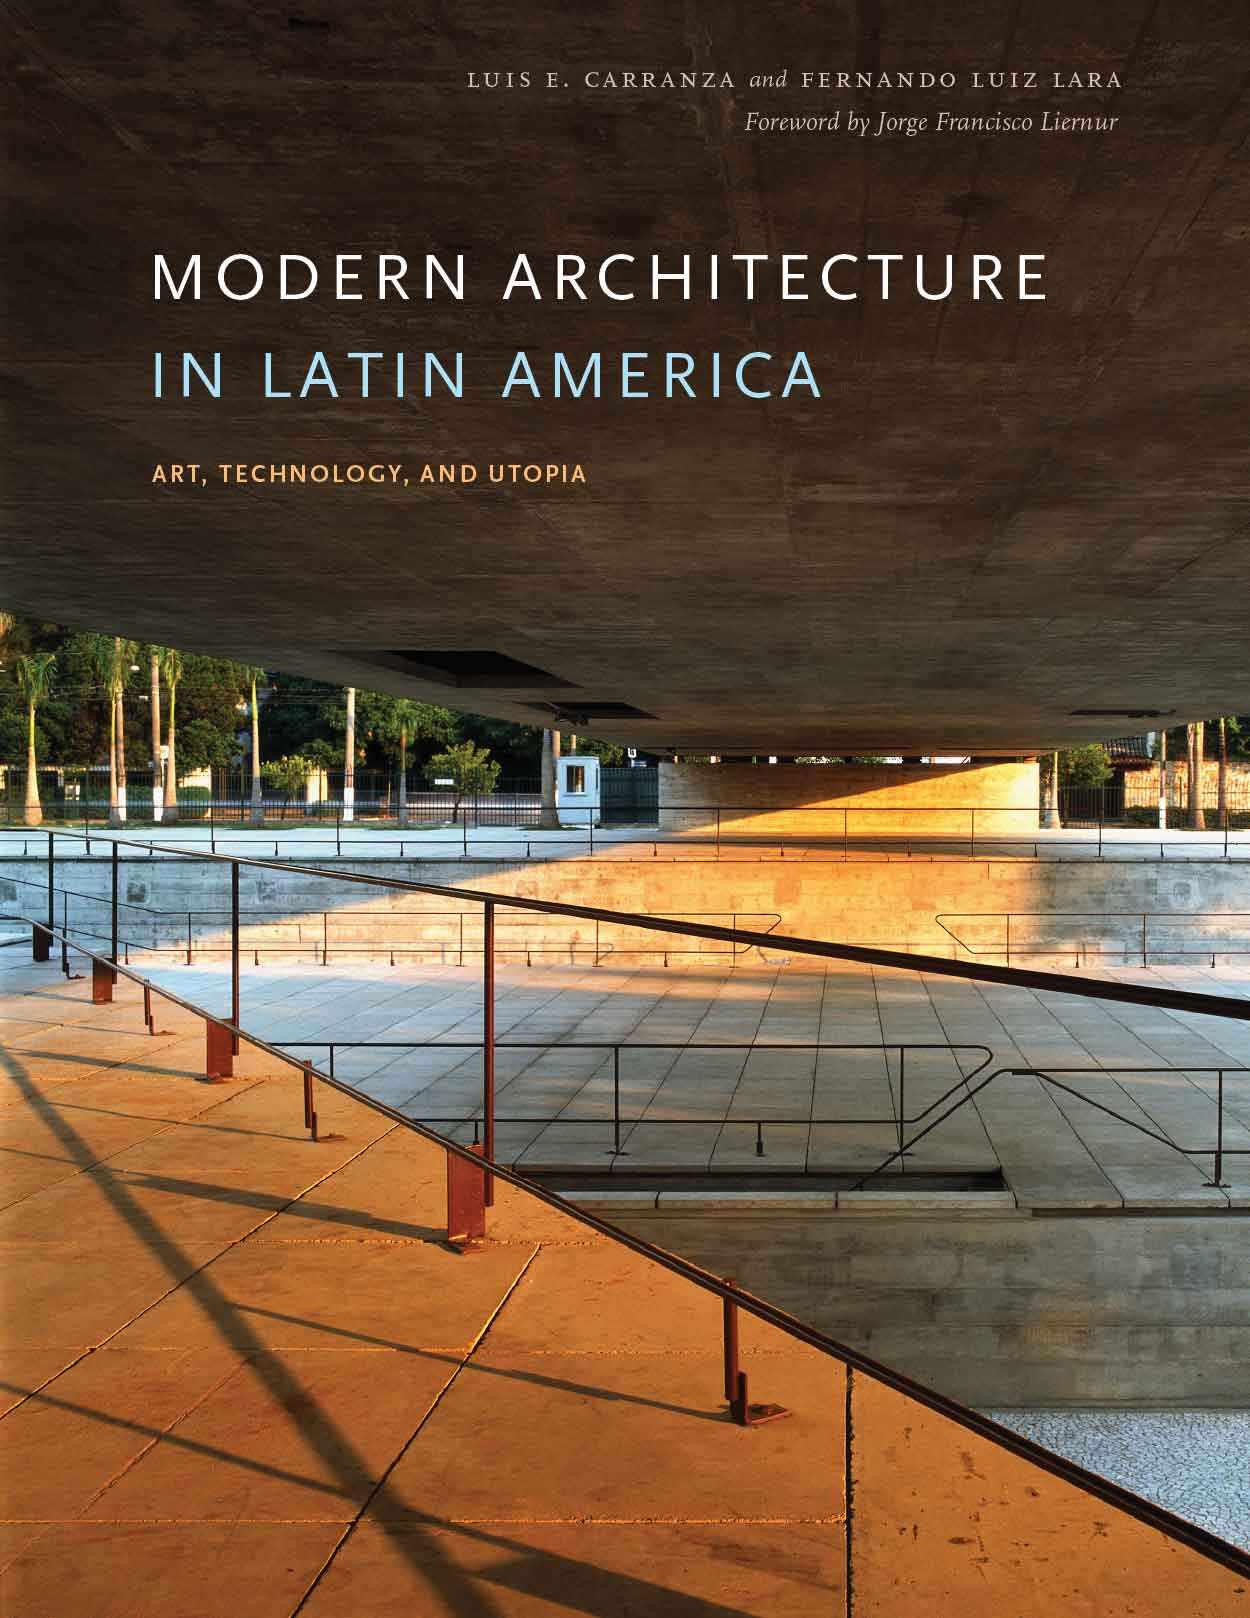 Modern Architecture in Latin America: Art, Technology, and Utopia